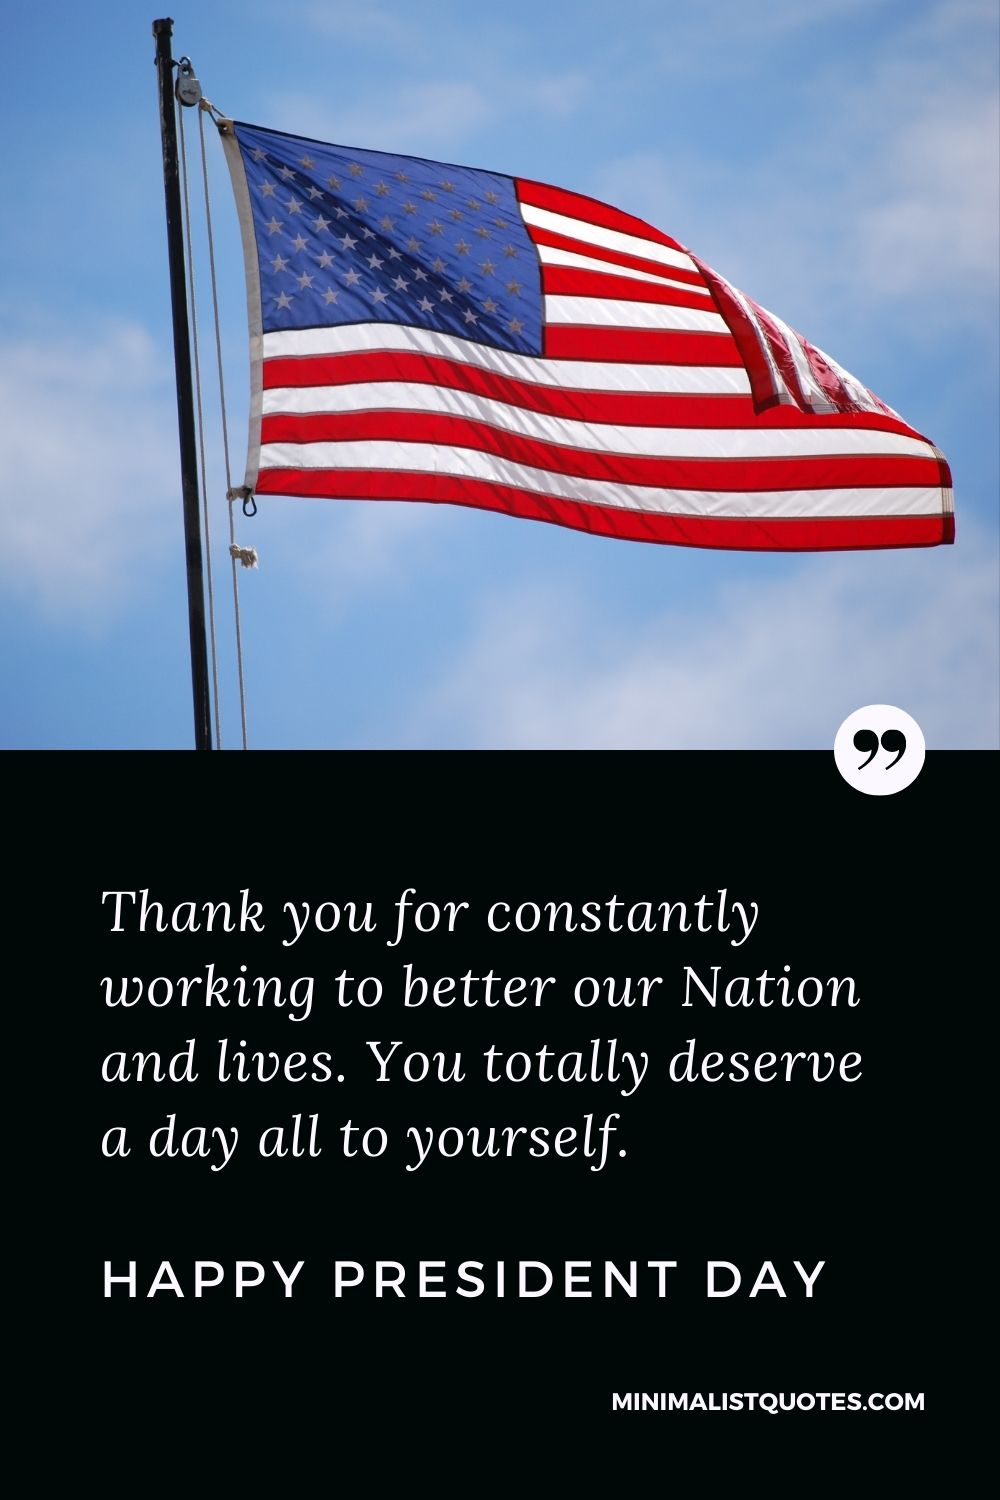 President Day Quote, Wish & Message With Image: Thank you for constantly working to better our Nation and lives. You totally deserve a day all to yourself. Happy President Day!